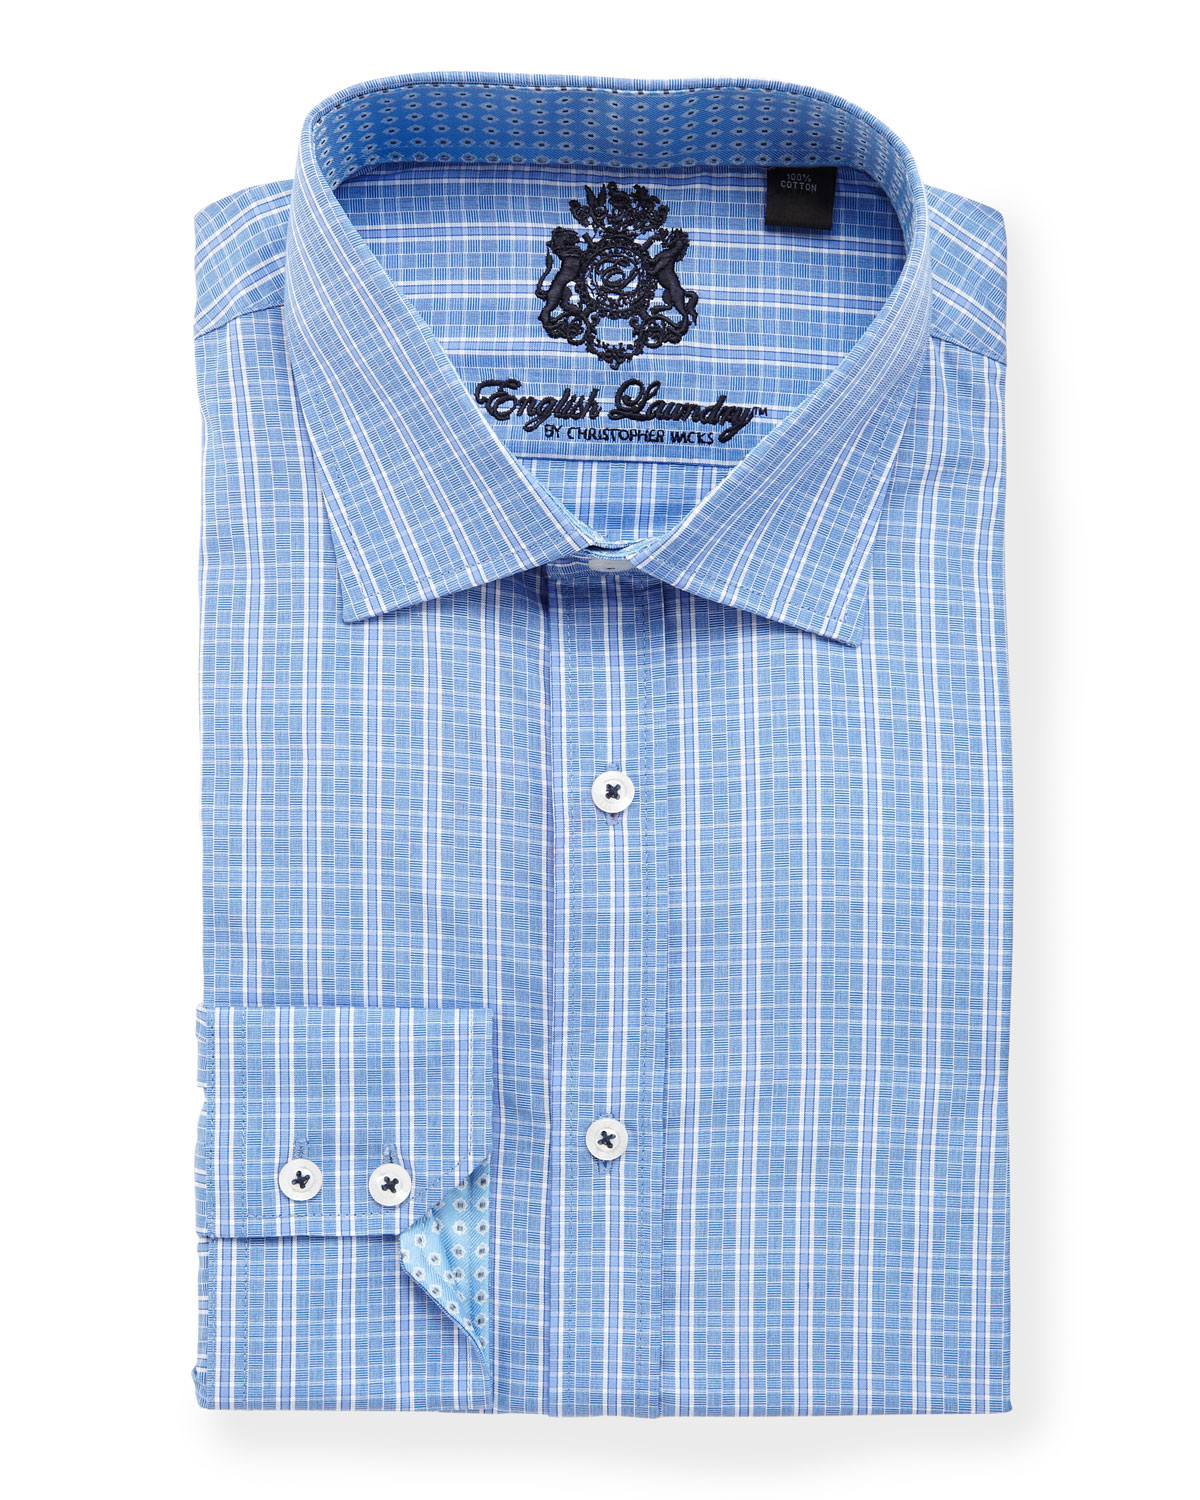 English Laundry Plaid Dress Shirt Blue In Blue For Men Lyst